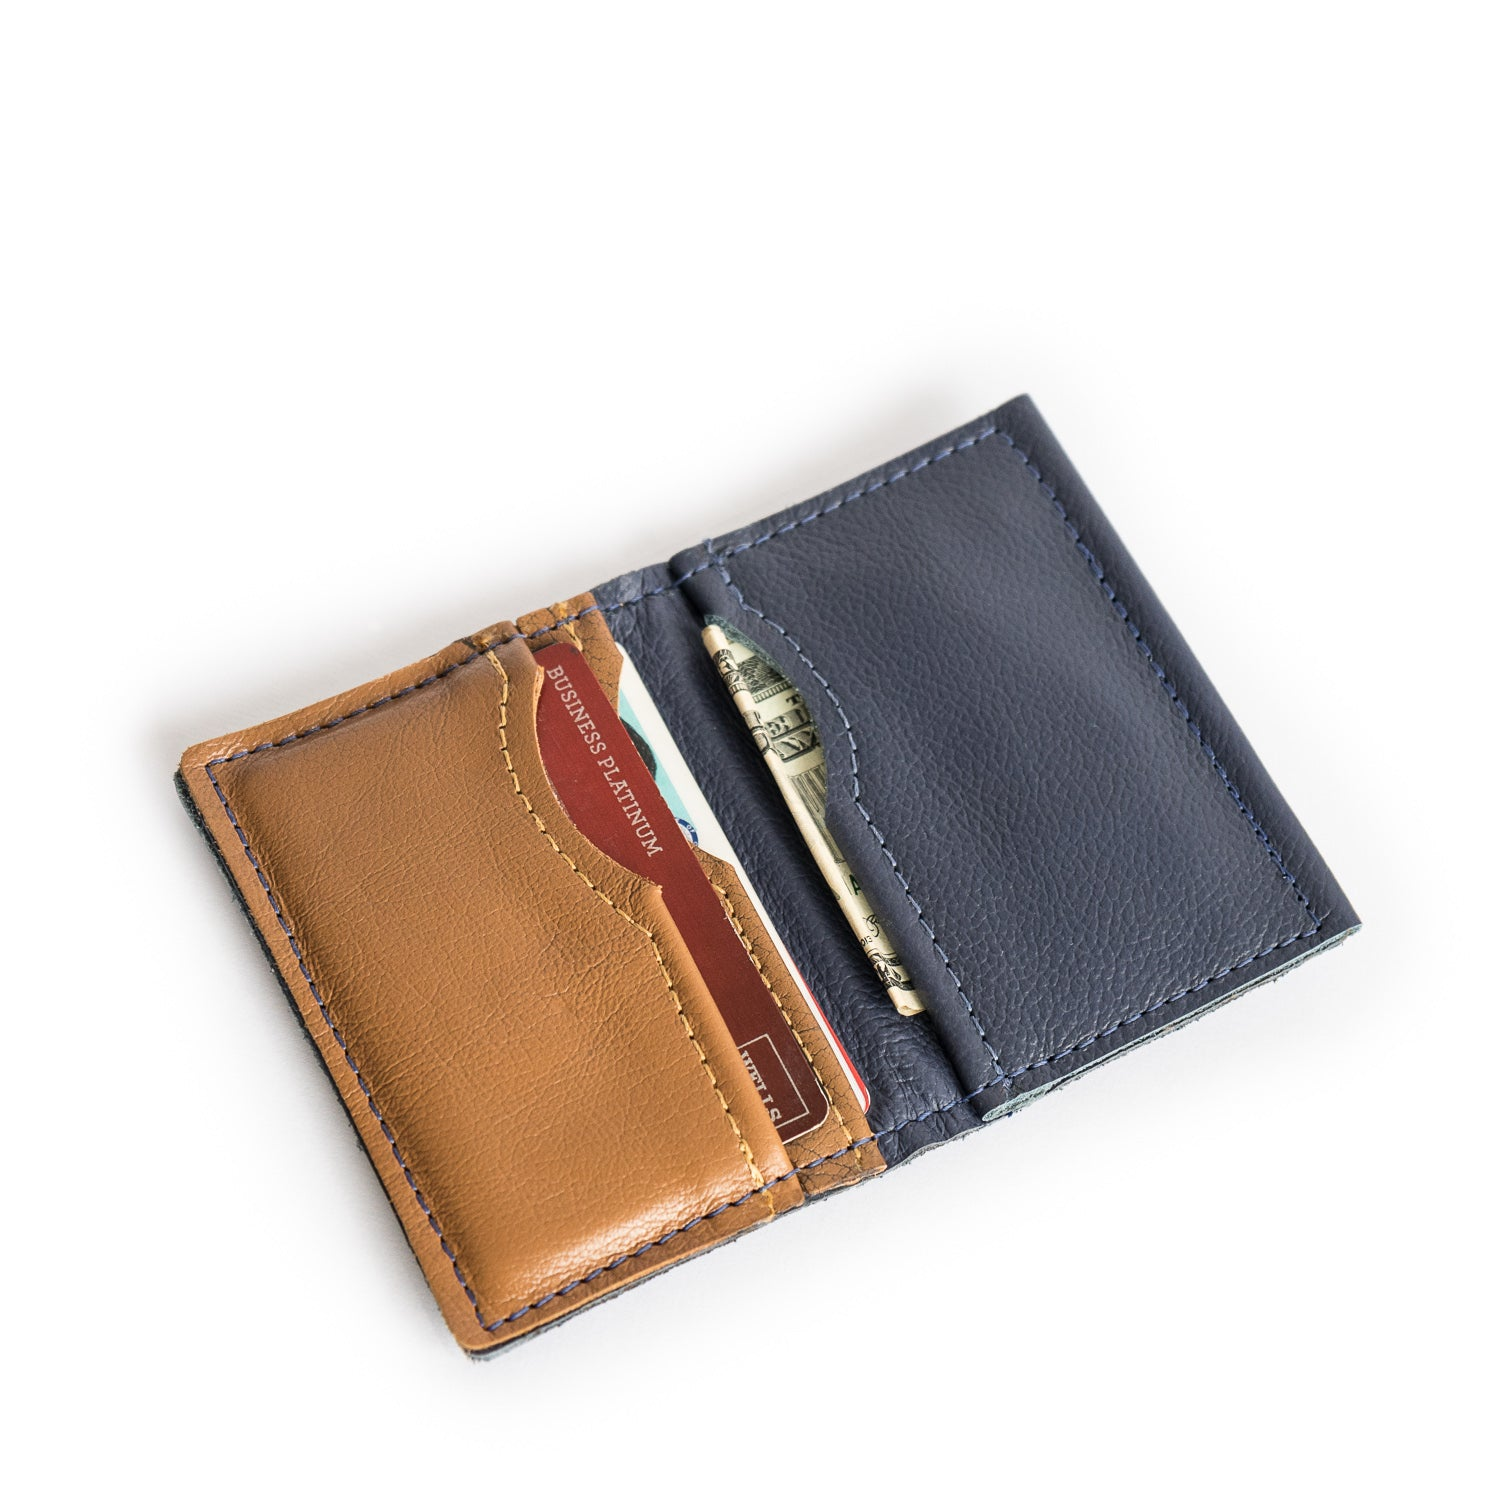 In Flight LUV Card Wallet Accessories - Looptworks